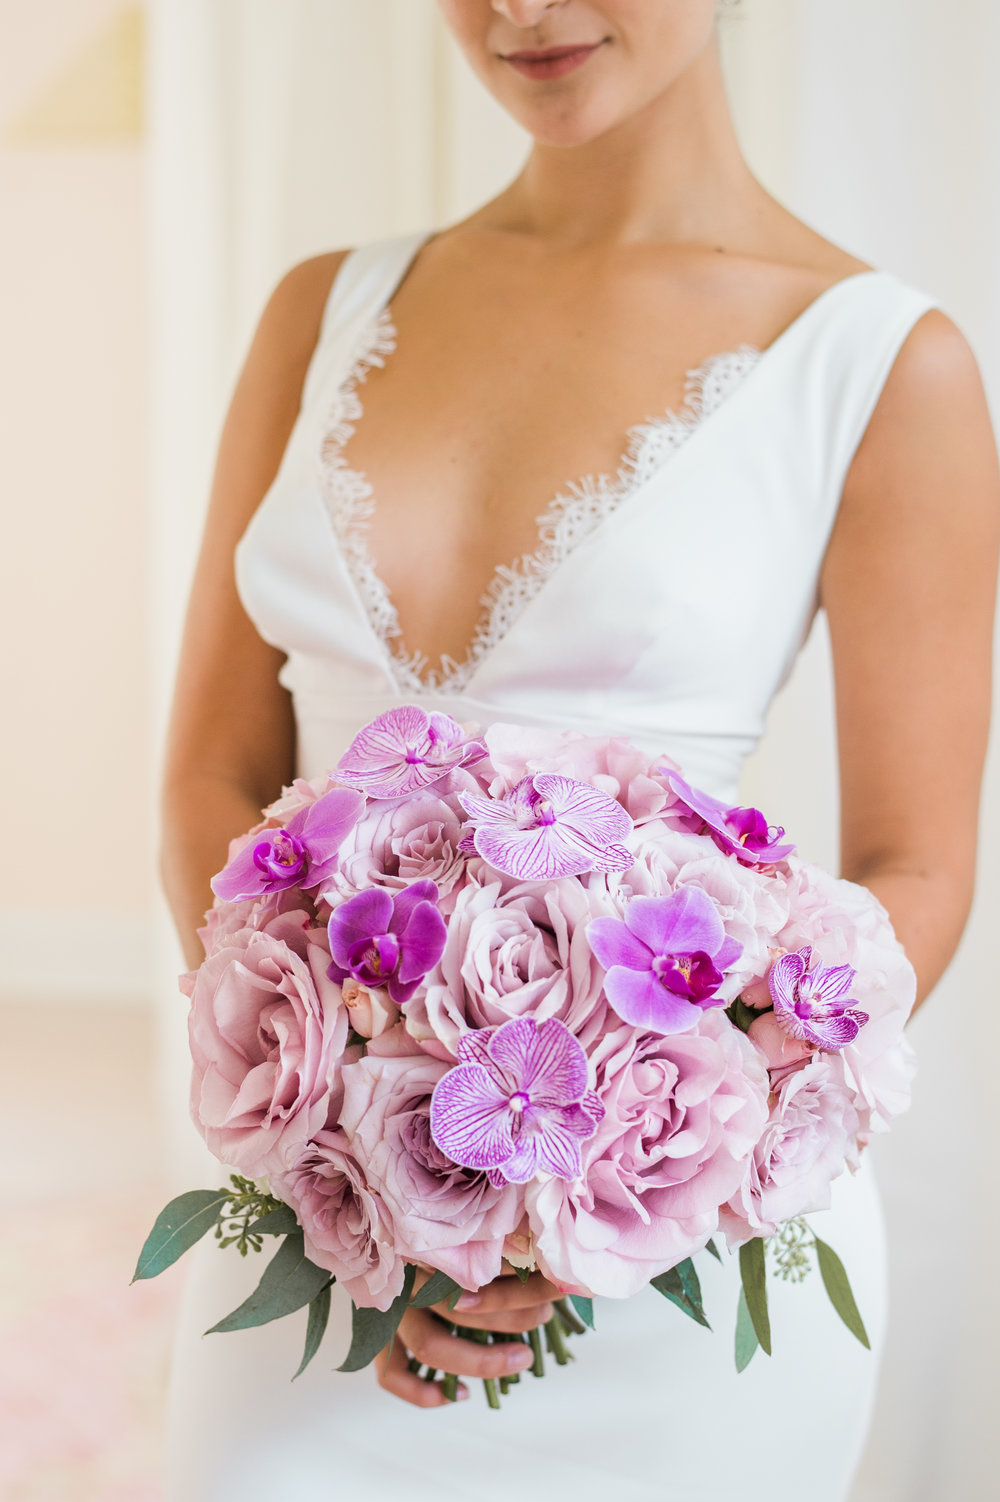 Garden Roses for days accented with Phalaenopsis.